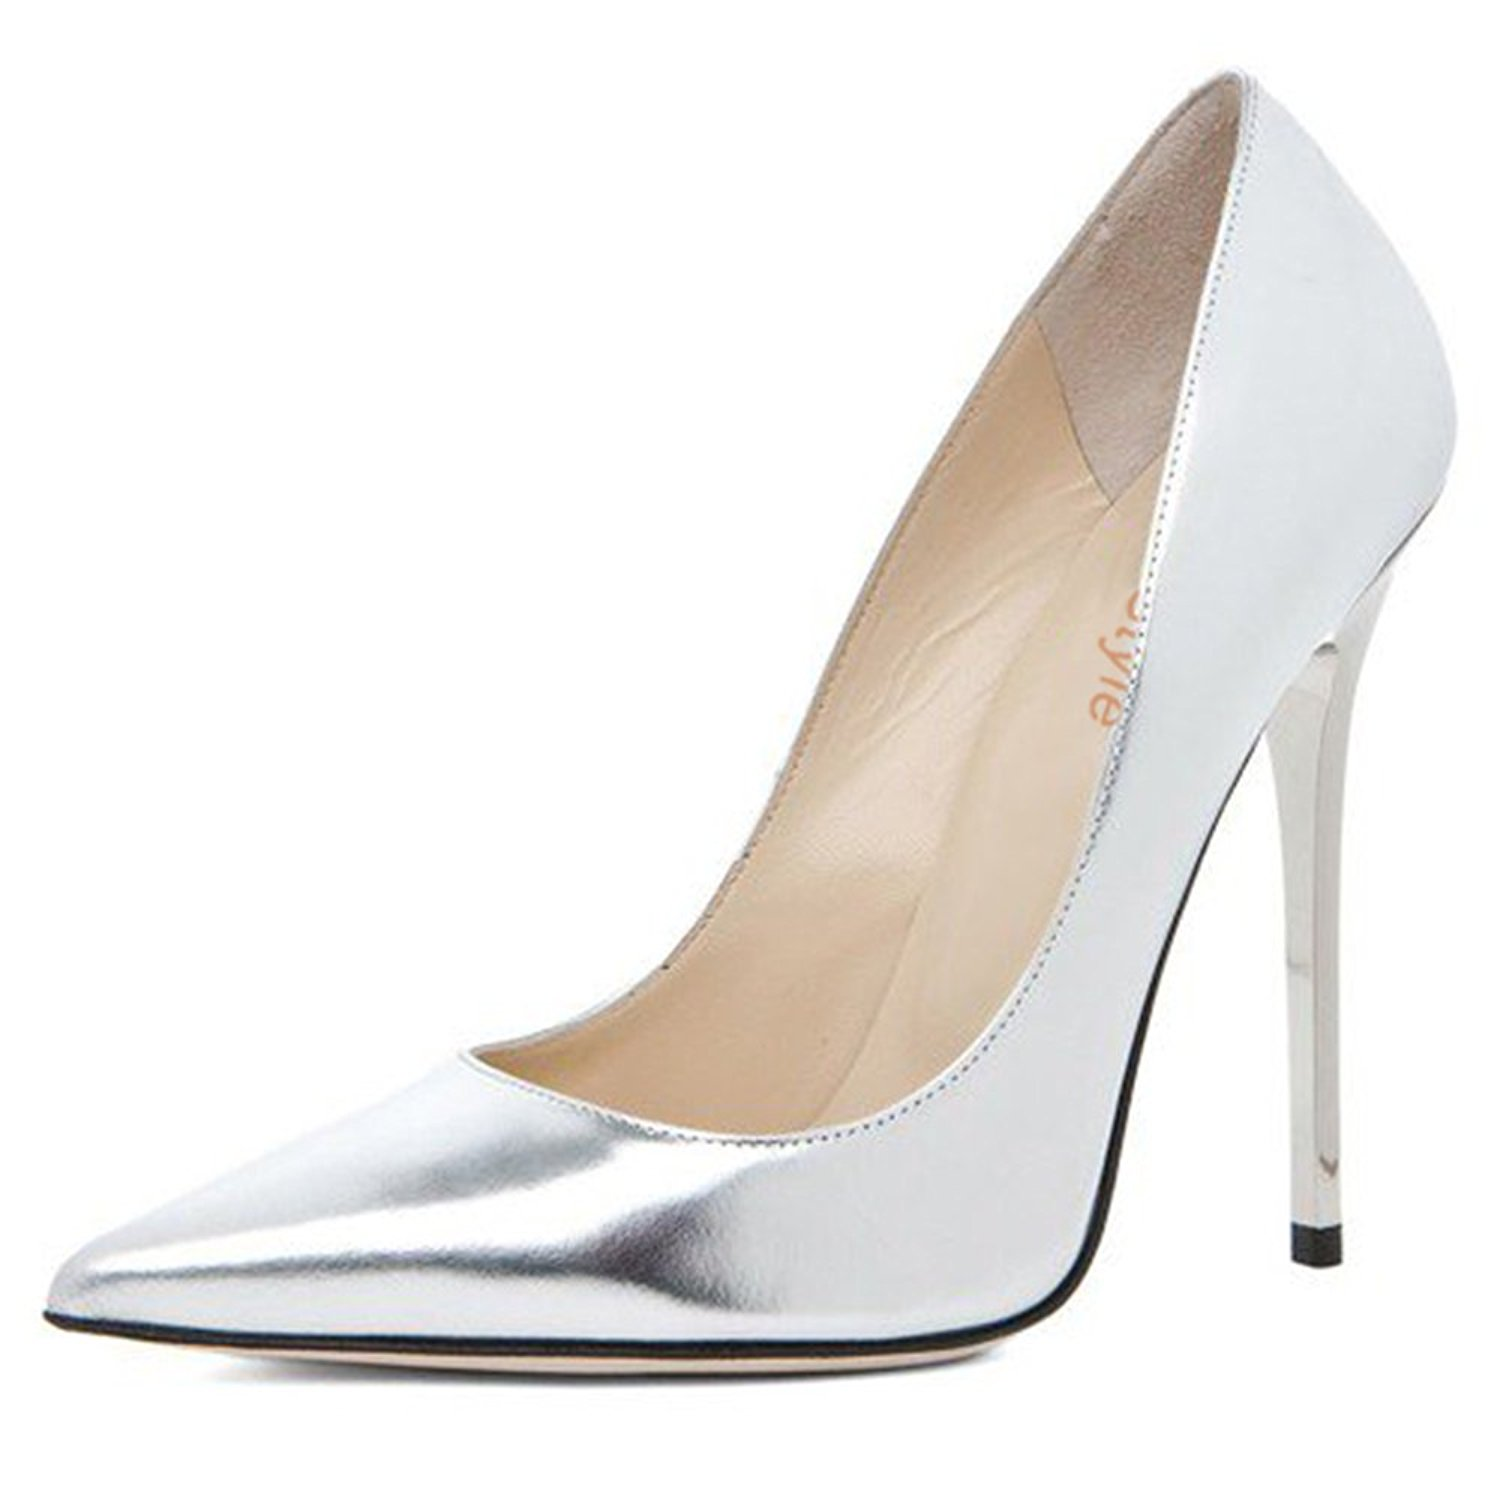 637625773bbf Get Quotations · ShoesStyle Office Lady Silver Pumps High Heel Formal Stilettos  Women Dress Shoes